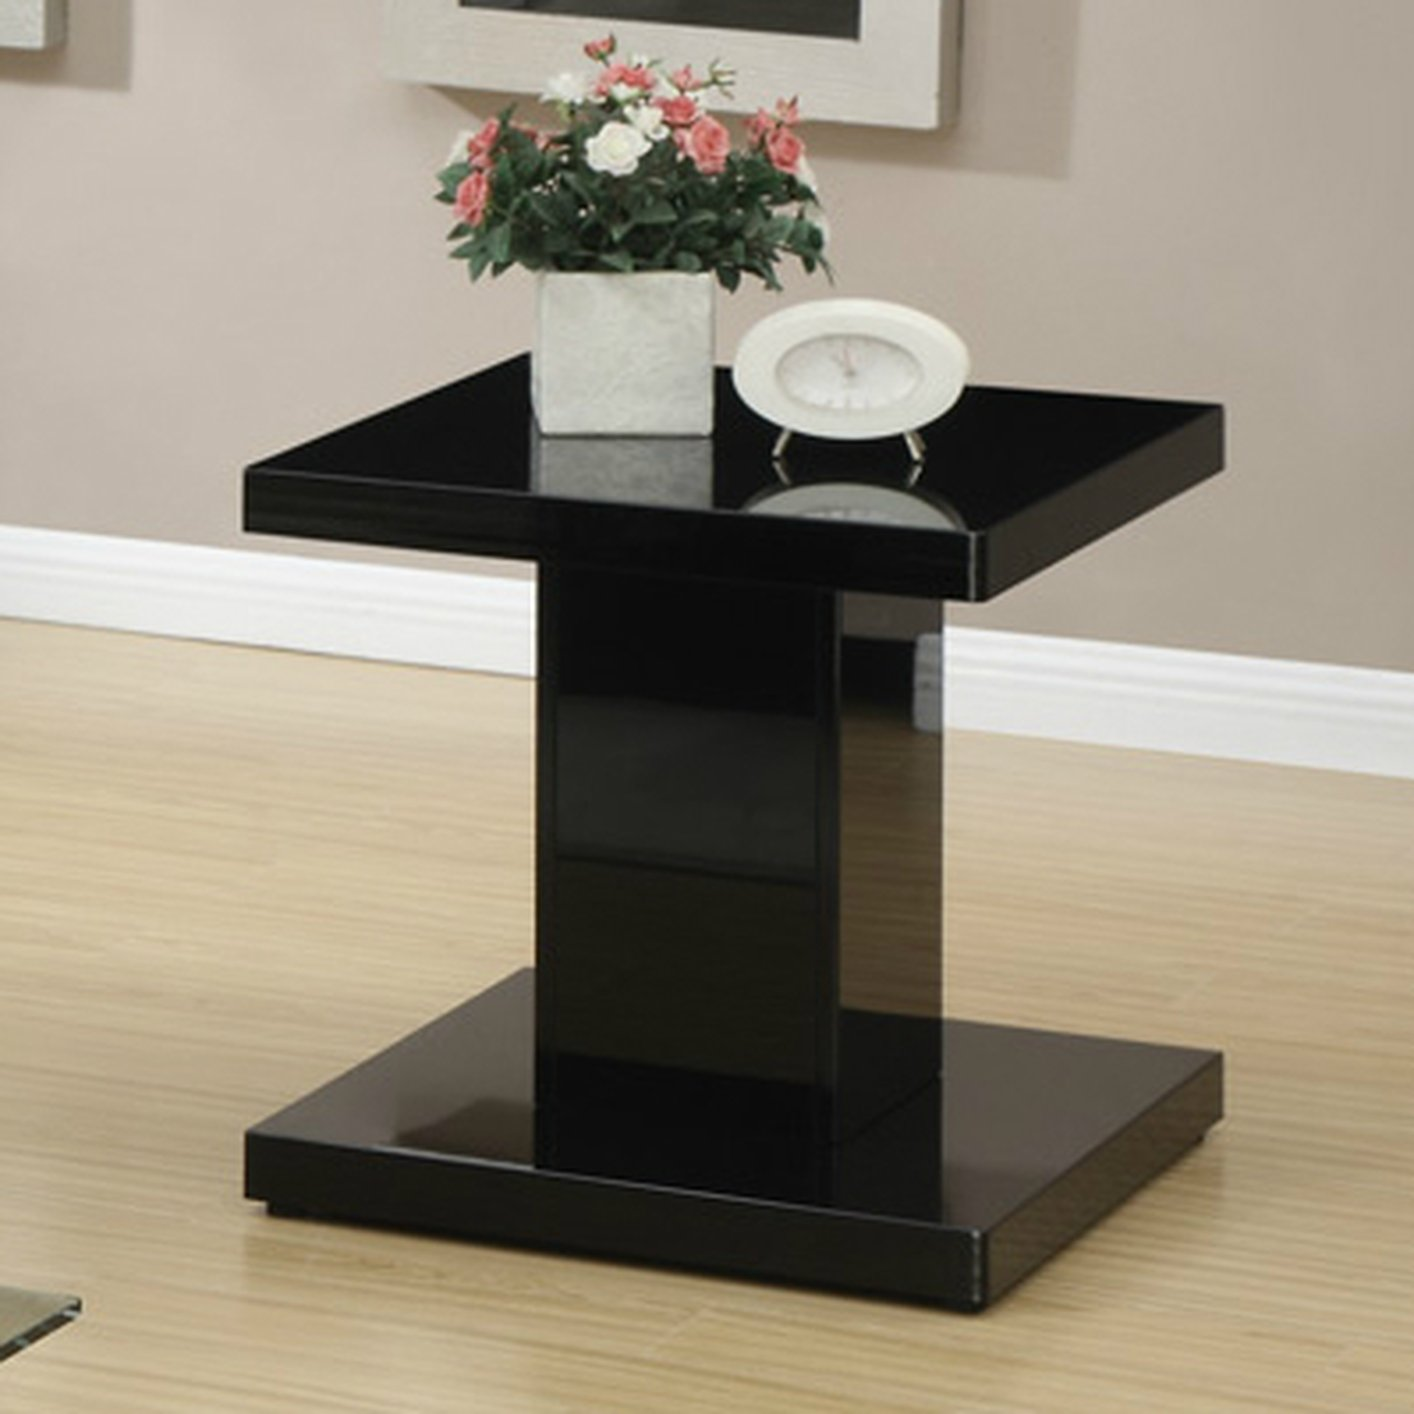 Black wood end table steal a sofa furniture outlet los